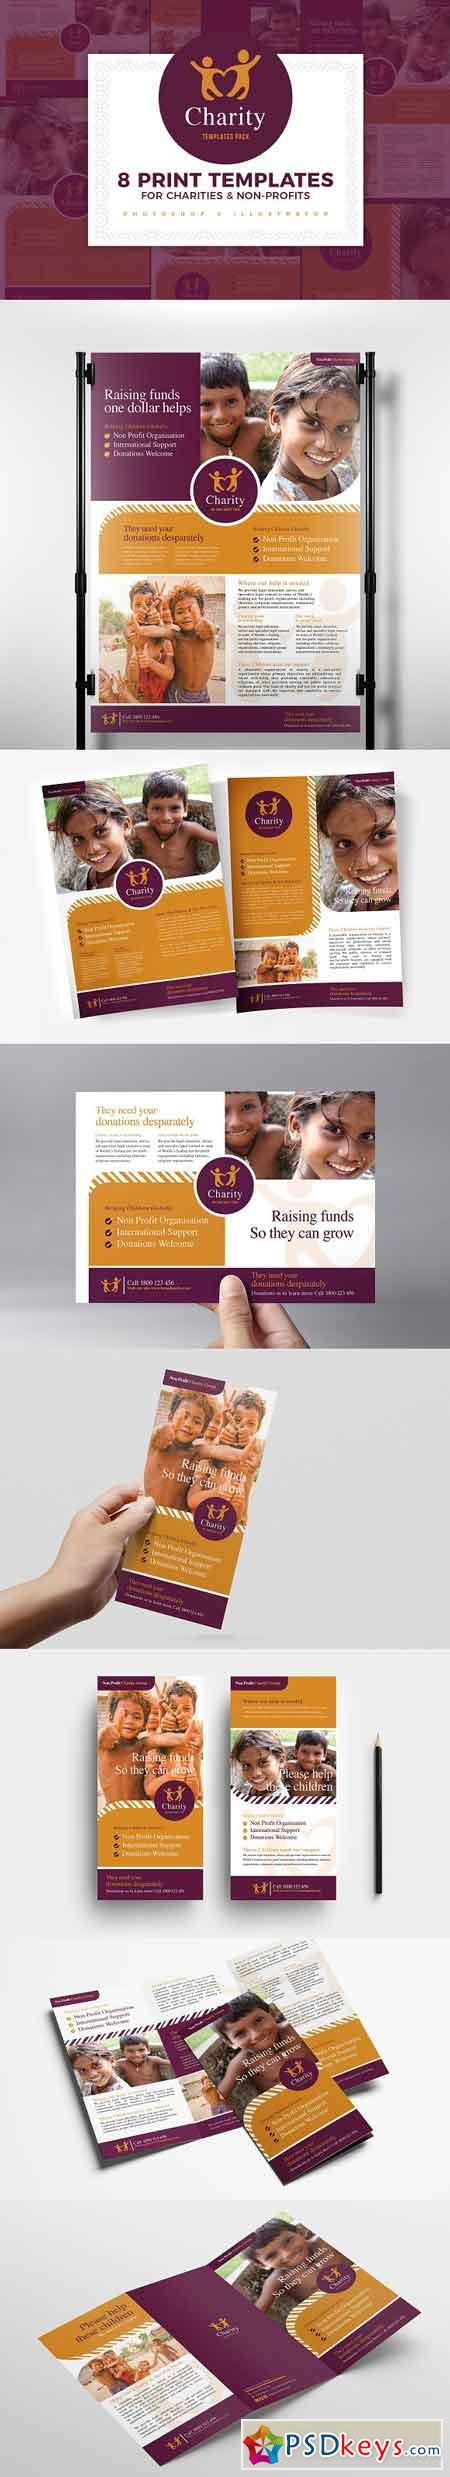 Charity Templates Pack 3014921